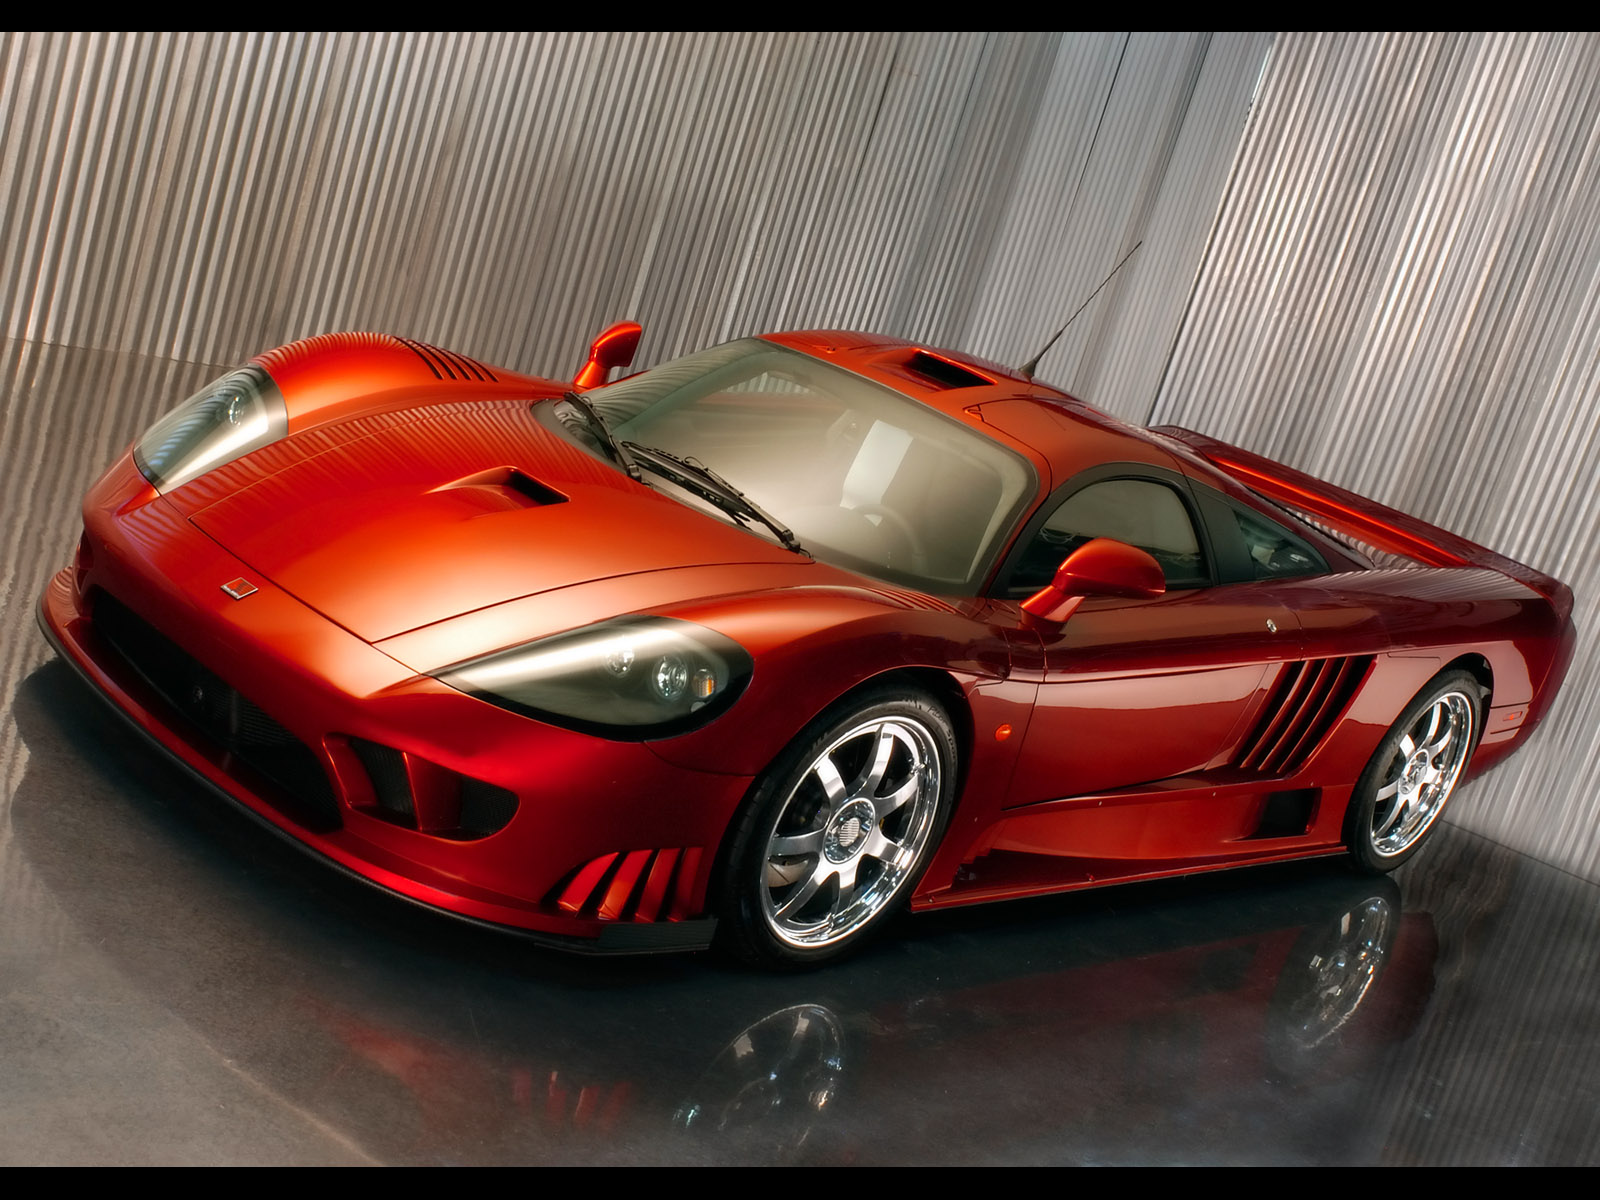 Saleen-S-Twin-Turbo-wallpaper-wp4403232